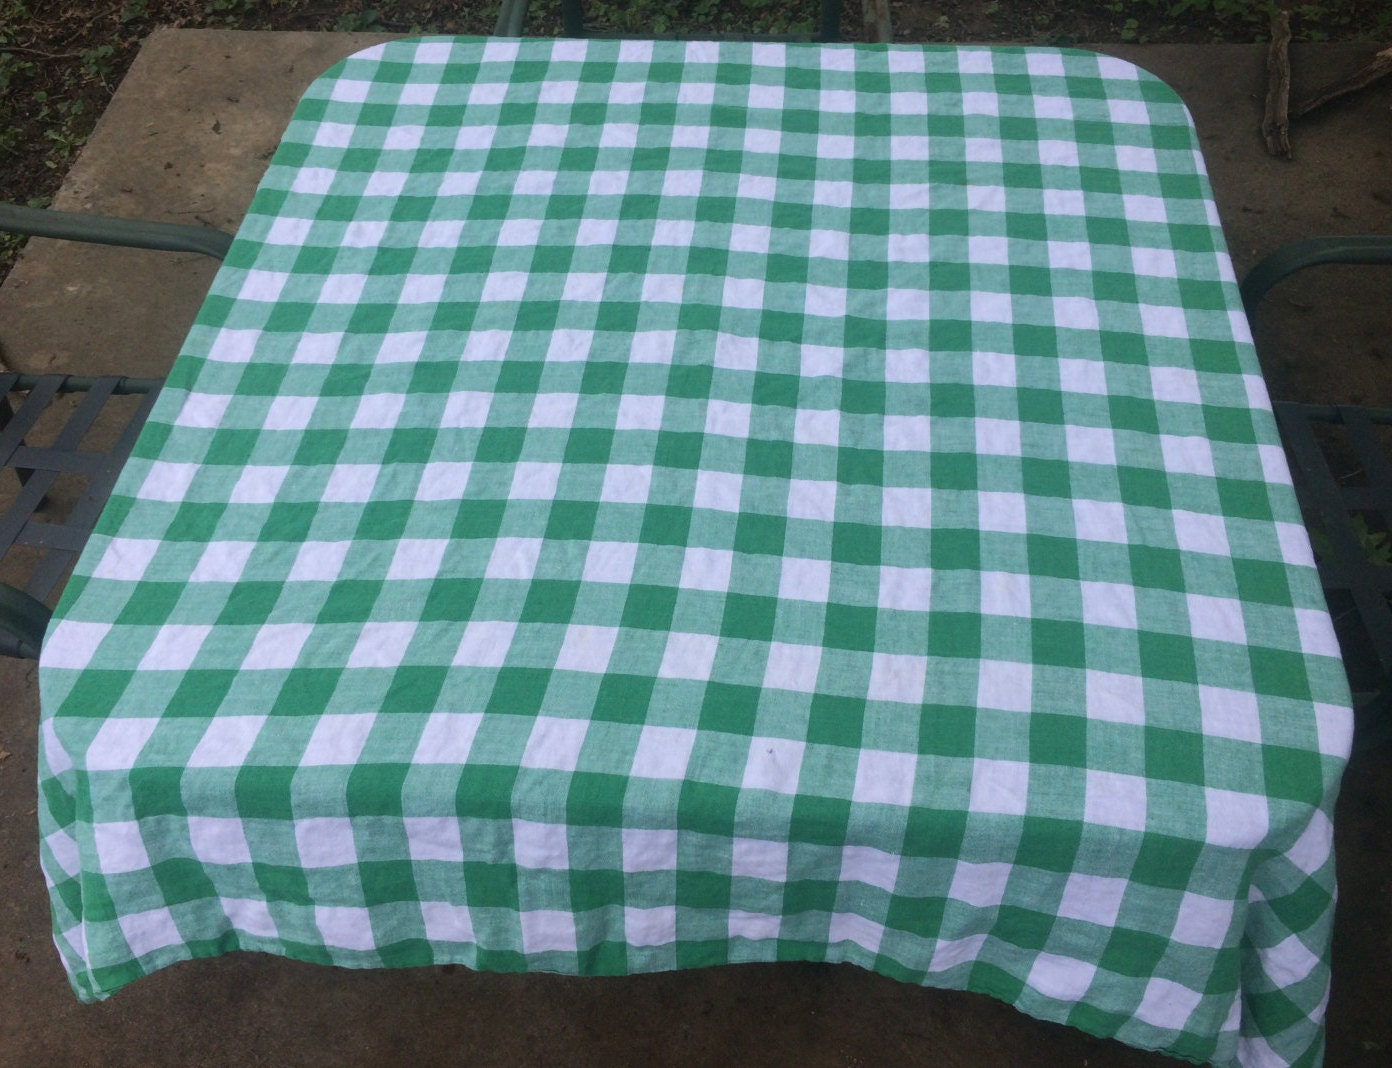 Gingham Green And White Checkered Tablecloth Vintage Gingham